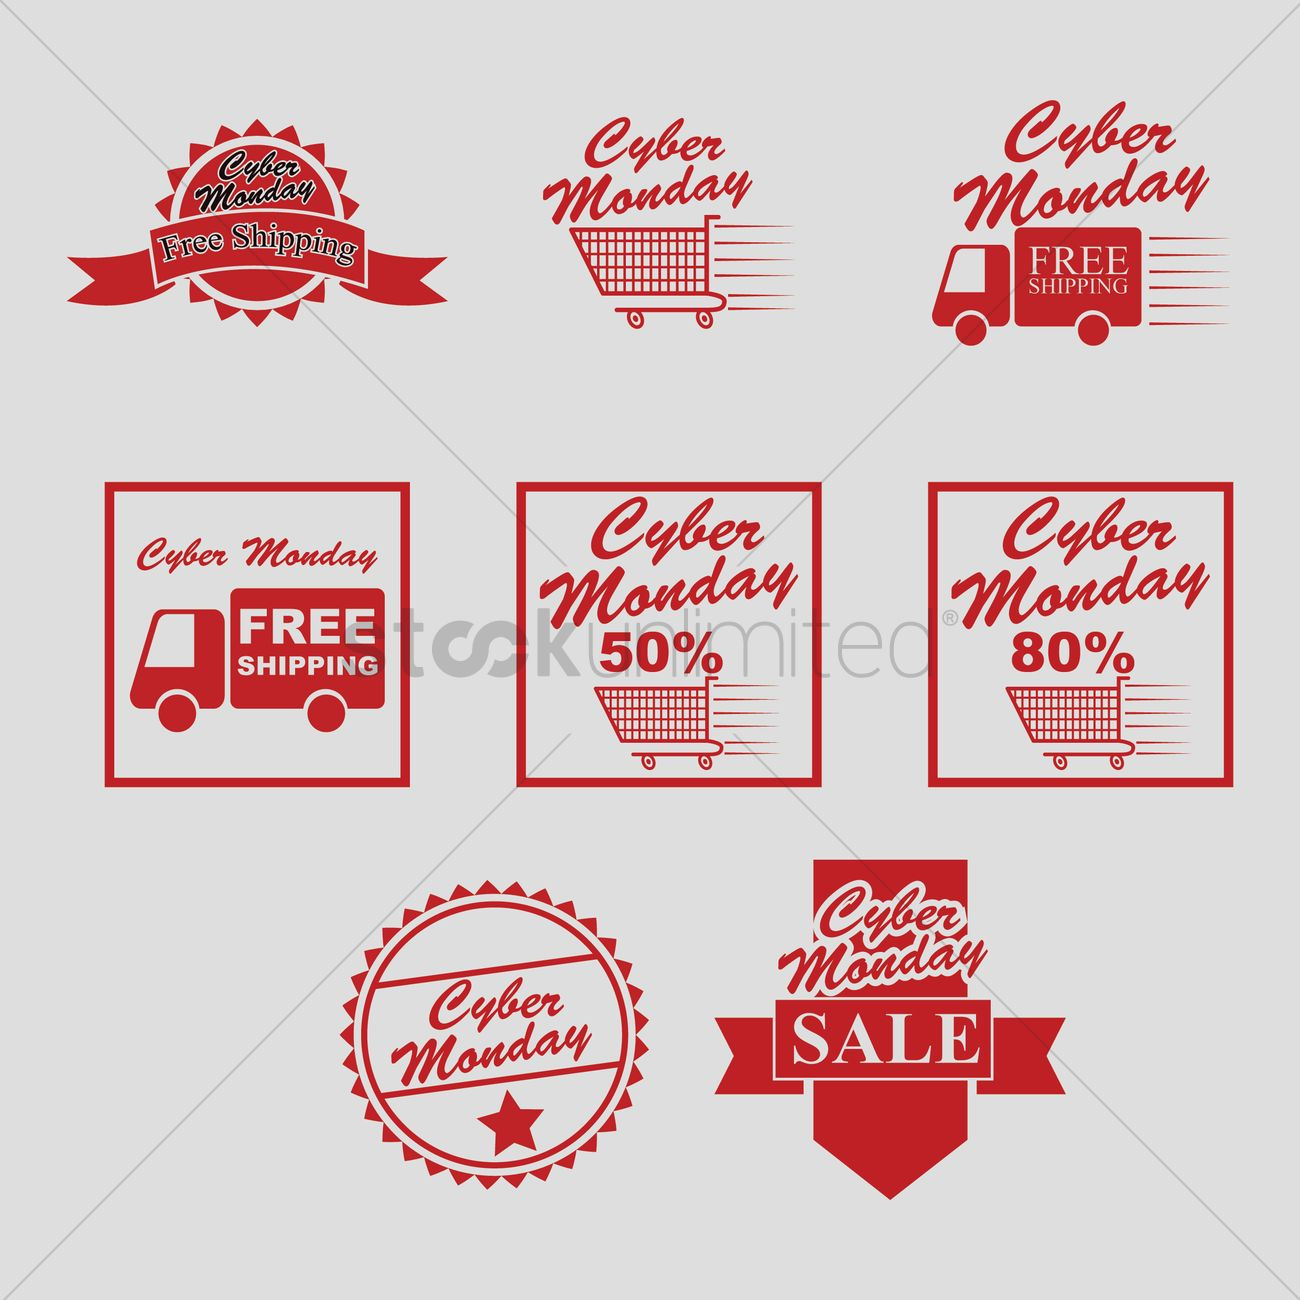 1300x1300 Collection Of Cyber Monday Sale Designs Vector Image